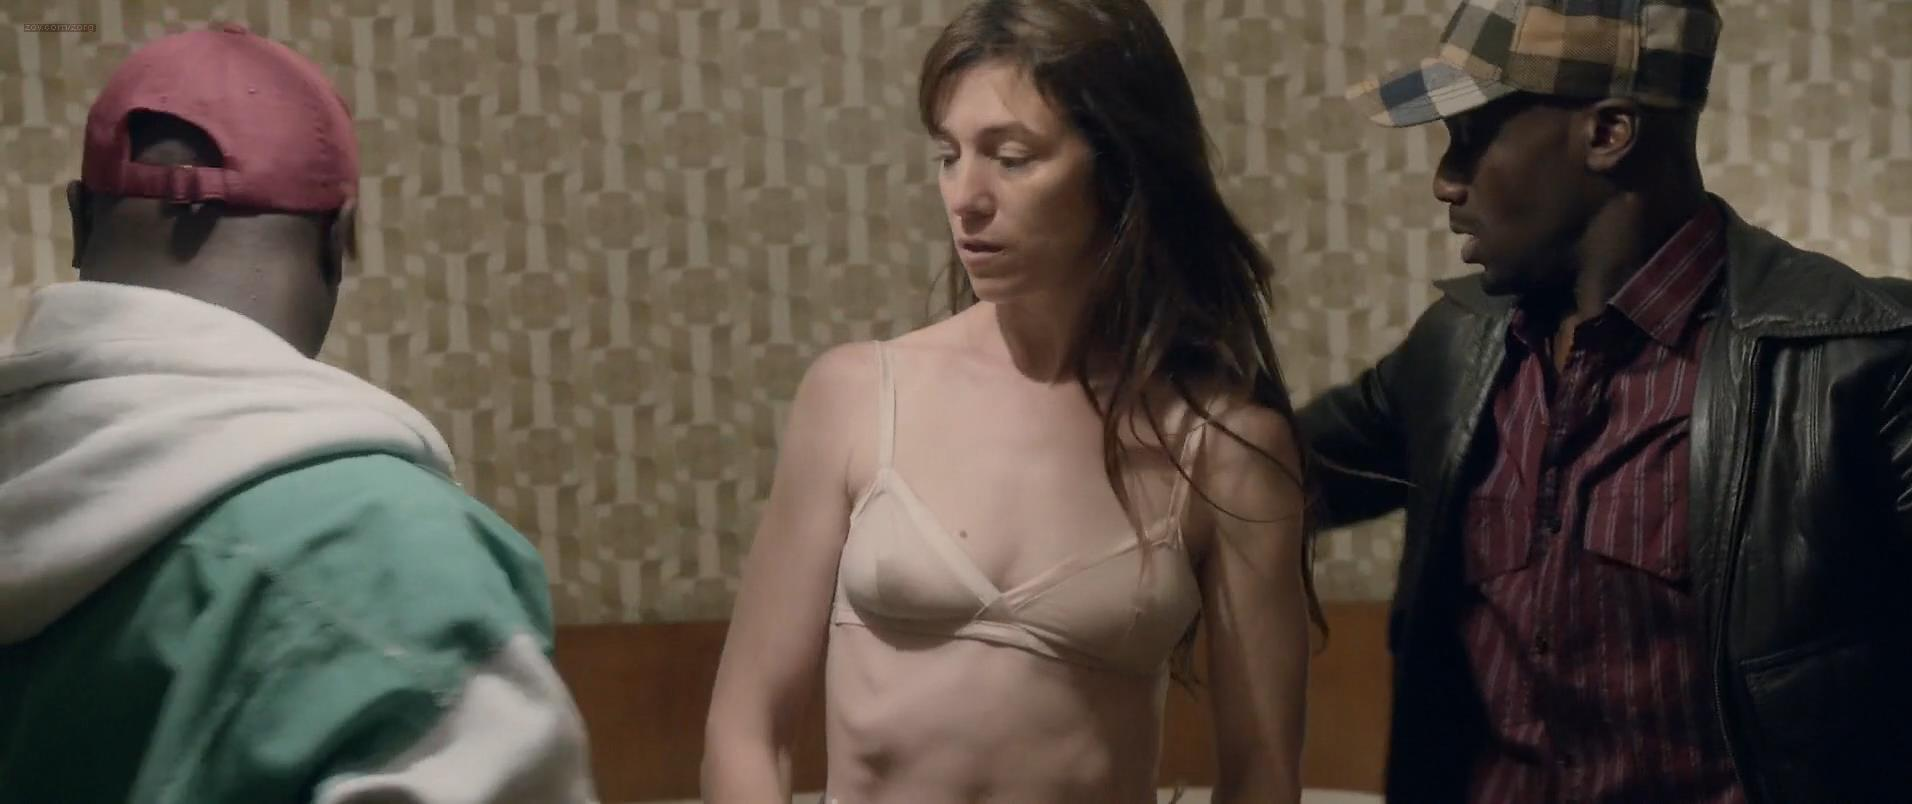 Charlotte gainsbourg mia goth nude from nymphomaniac vol